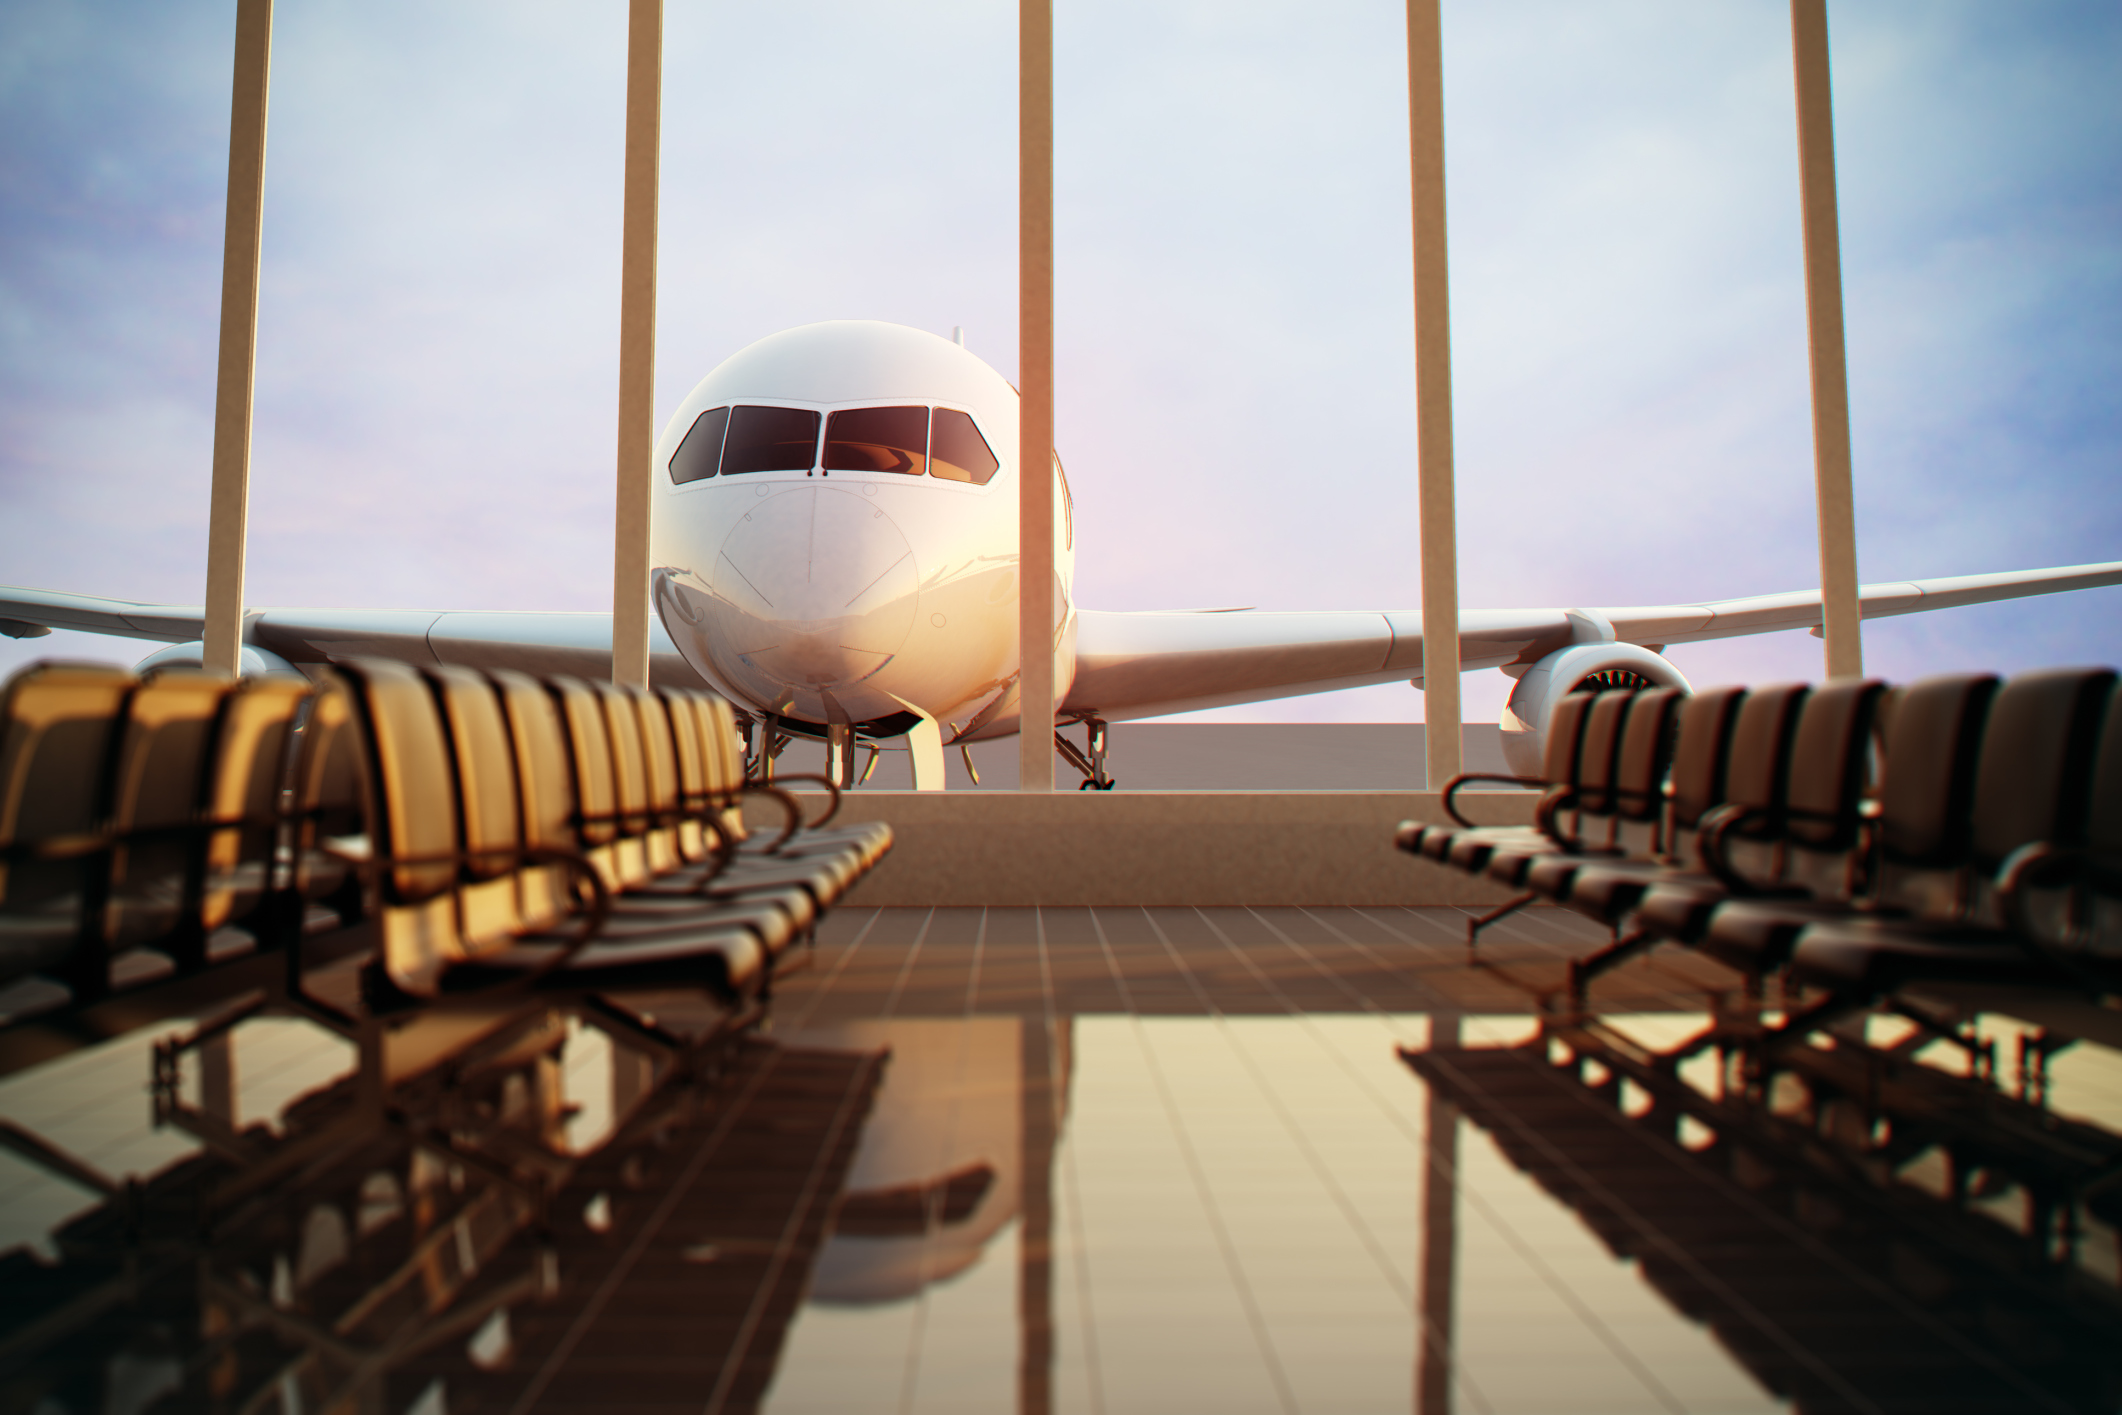 Port Huron Airport Shuttle Providing Services from Sarnia, Ontario to Detroit Metro Airport.